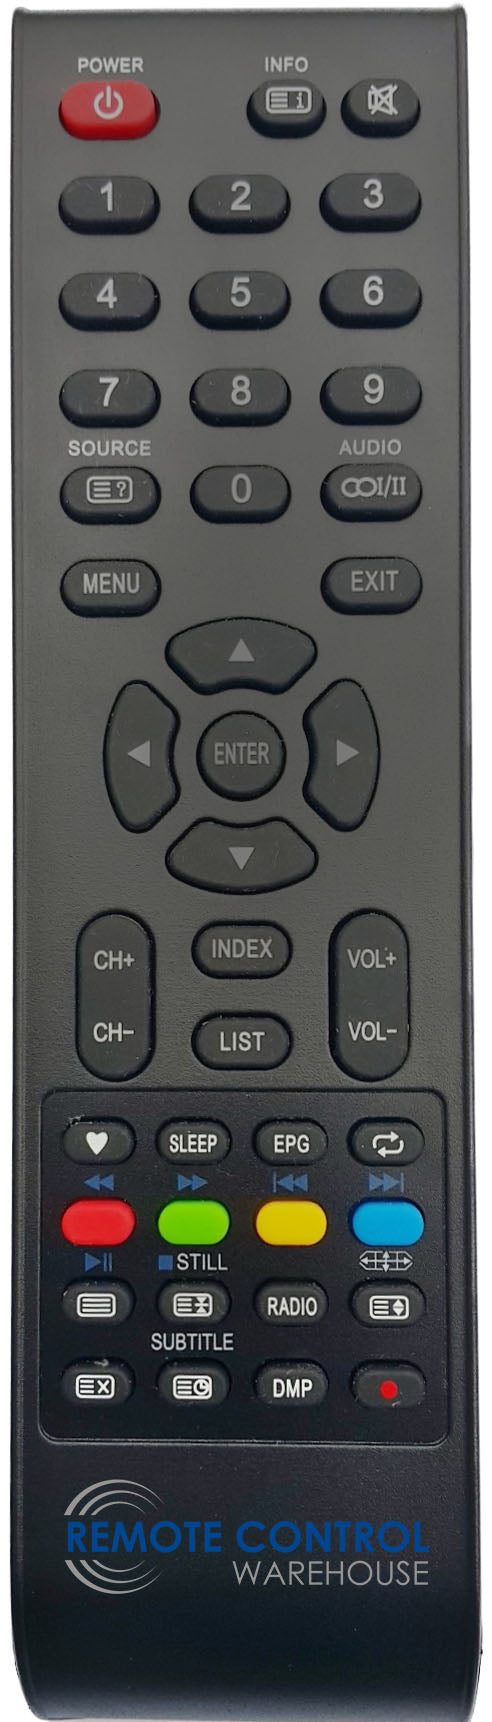 KOGAN REMOTE CONTROL -   KALED40XXXTB   TV